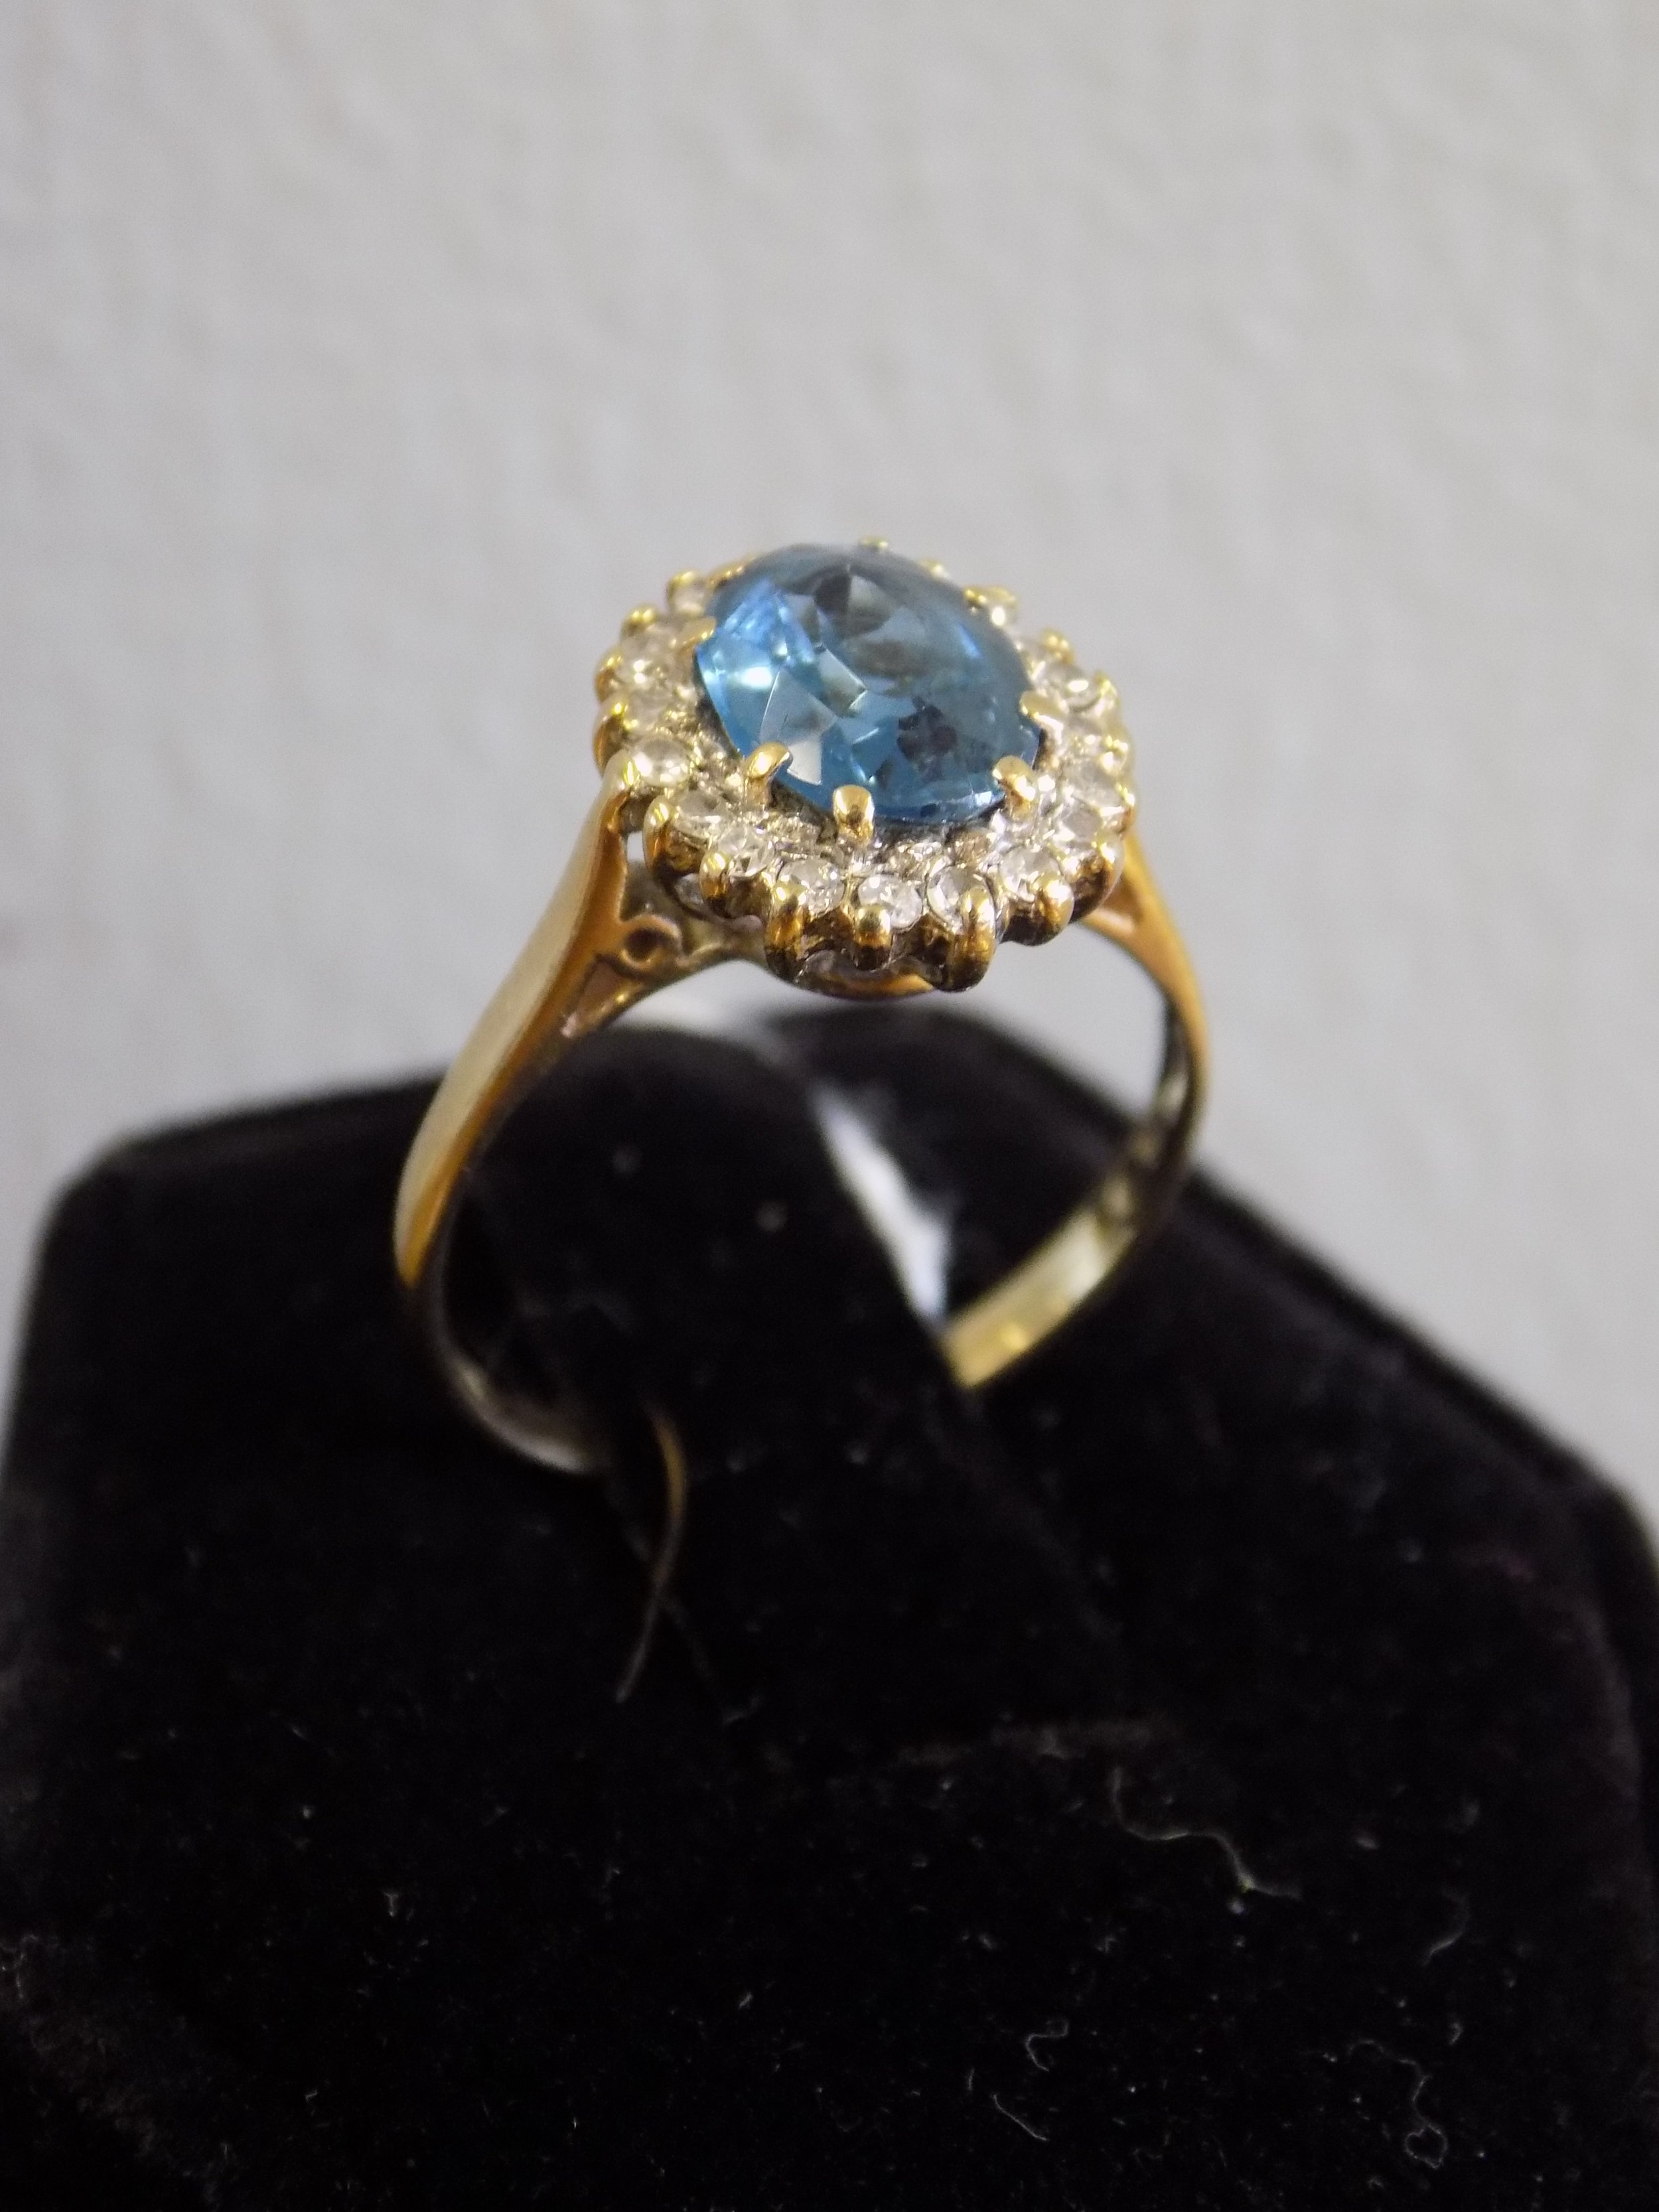 9ct gold blue topaz and diamond ring £160.00